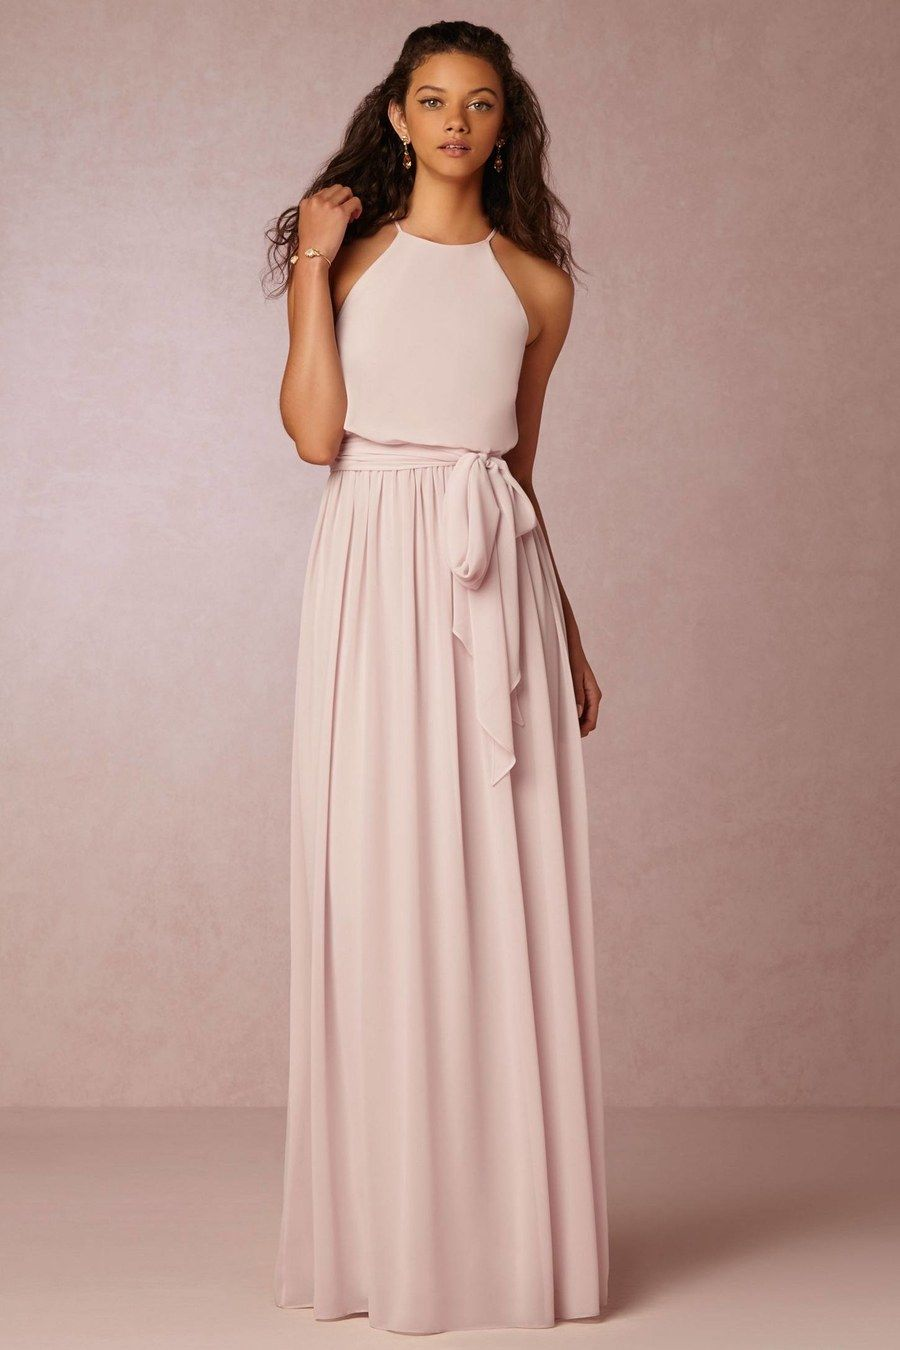 BHLDN Alana dress, $230. anthropologie.com | Formal | Pinterest ...